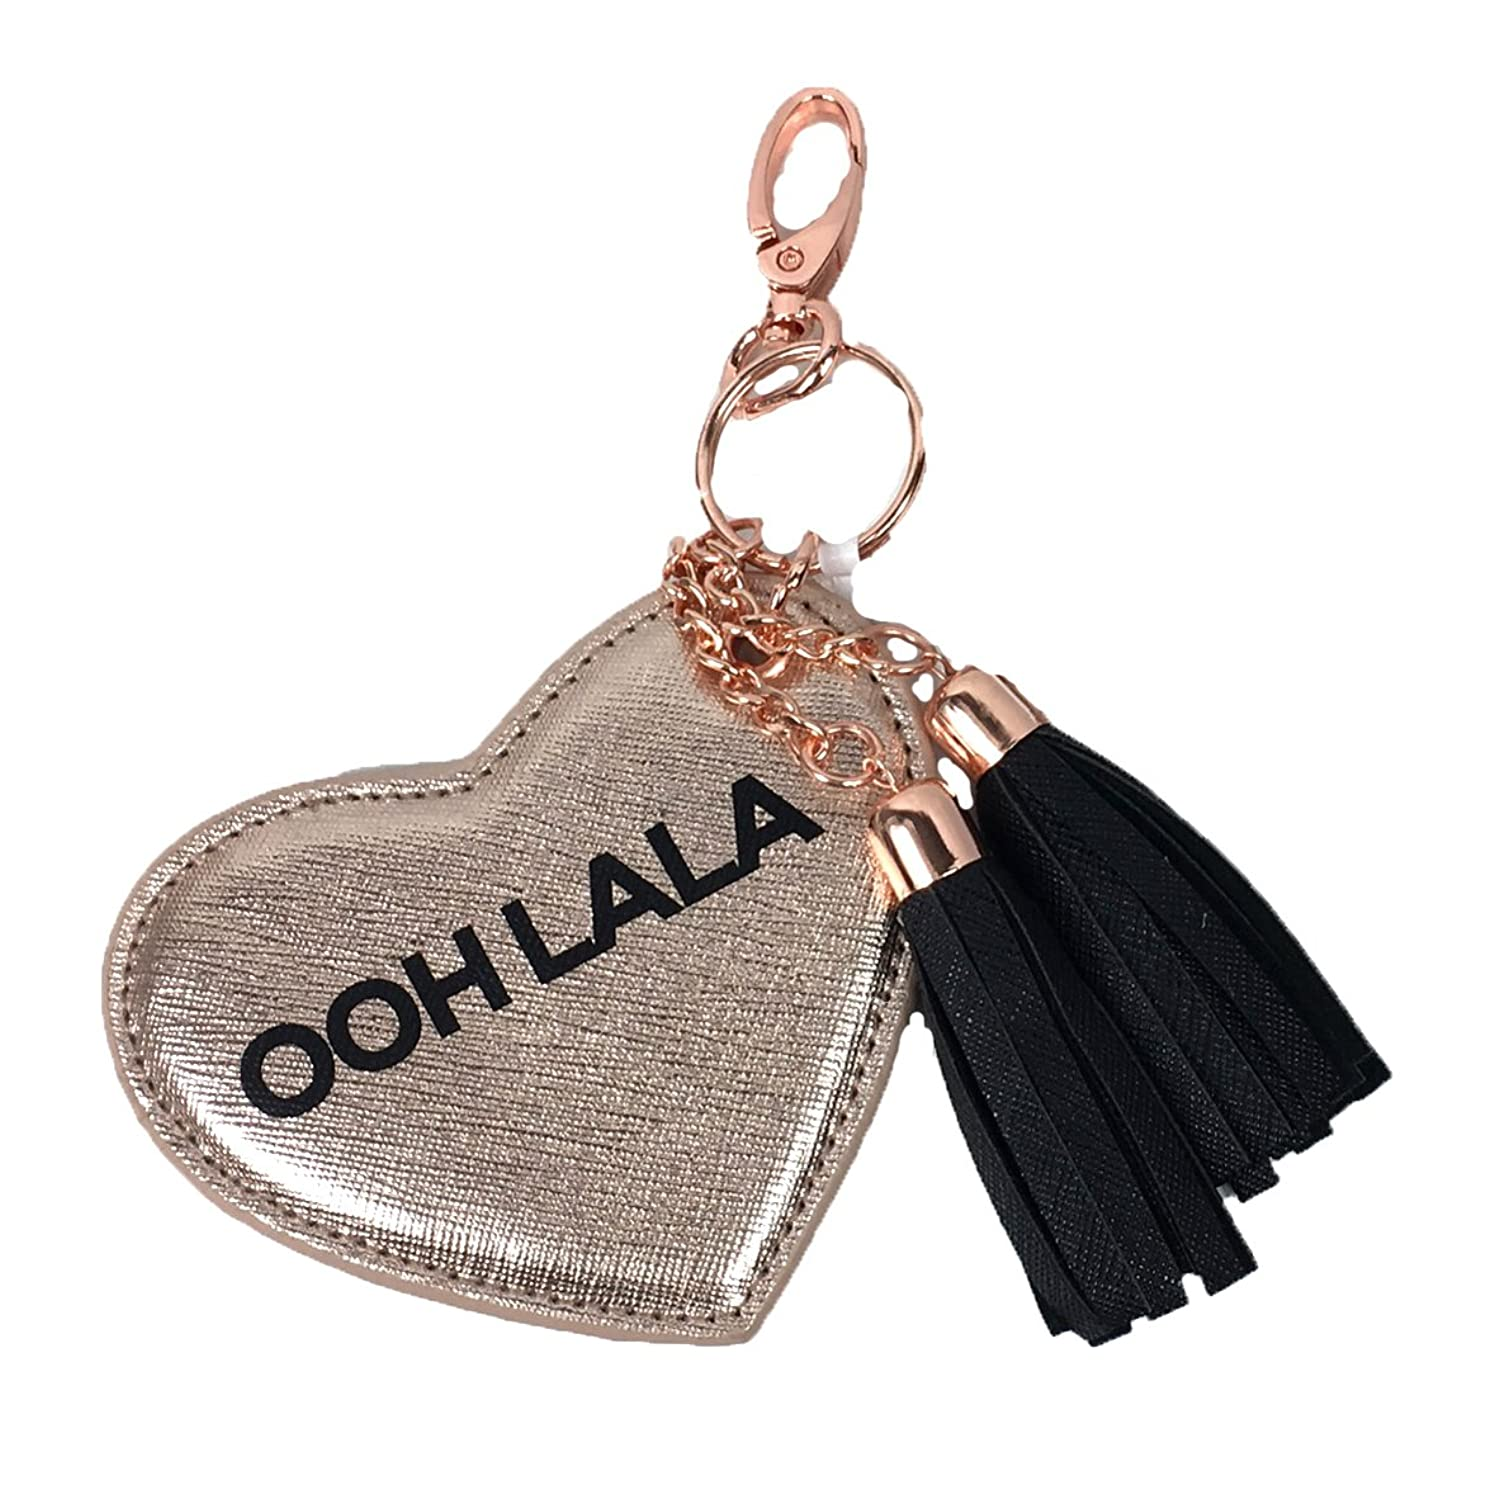 Under One Sky 'Ooh La La' Heart Key Chain Purse Charm, Rose Gold